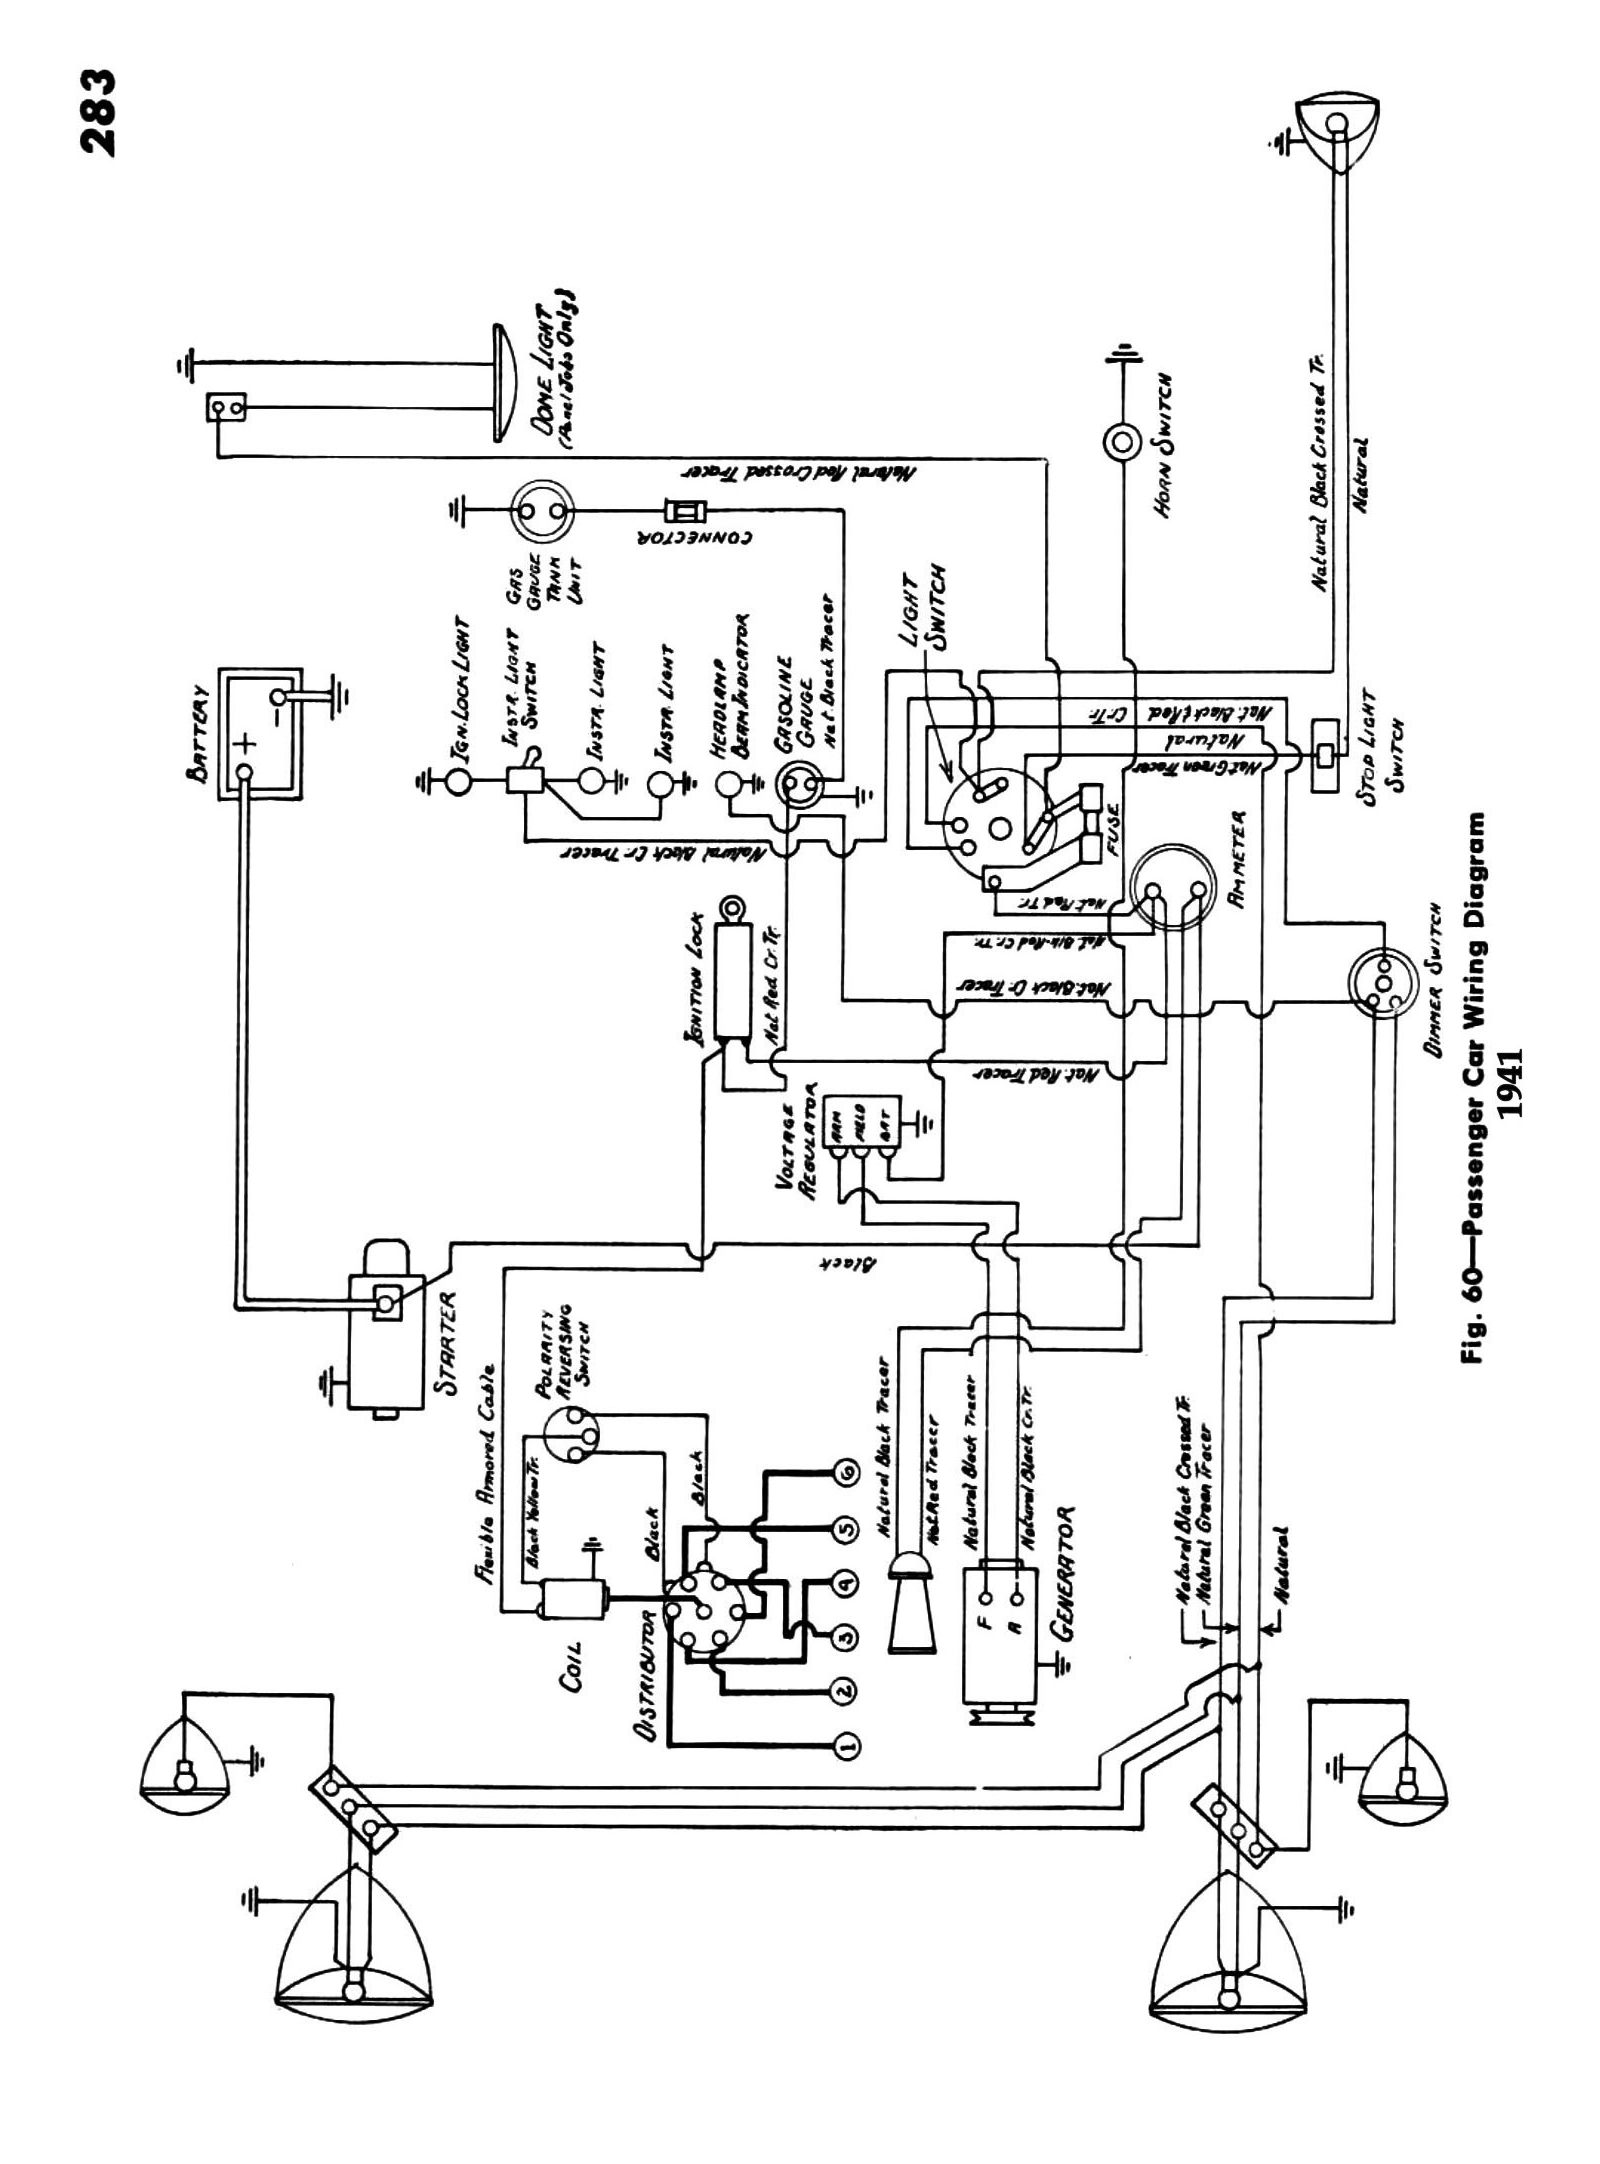 chevy motor wiring diagram chevy wiring diagrams online 1941 passenger car wiring chevy motor wiring diagram